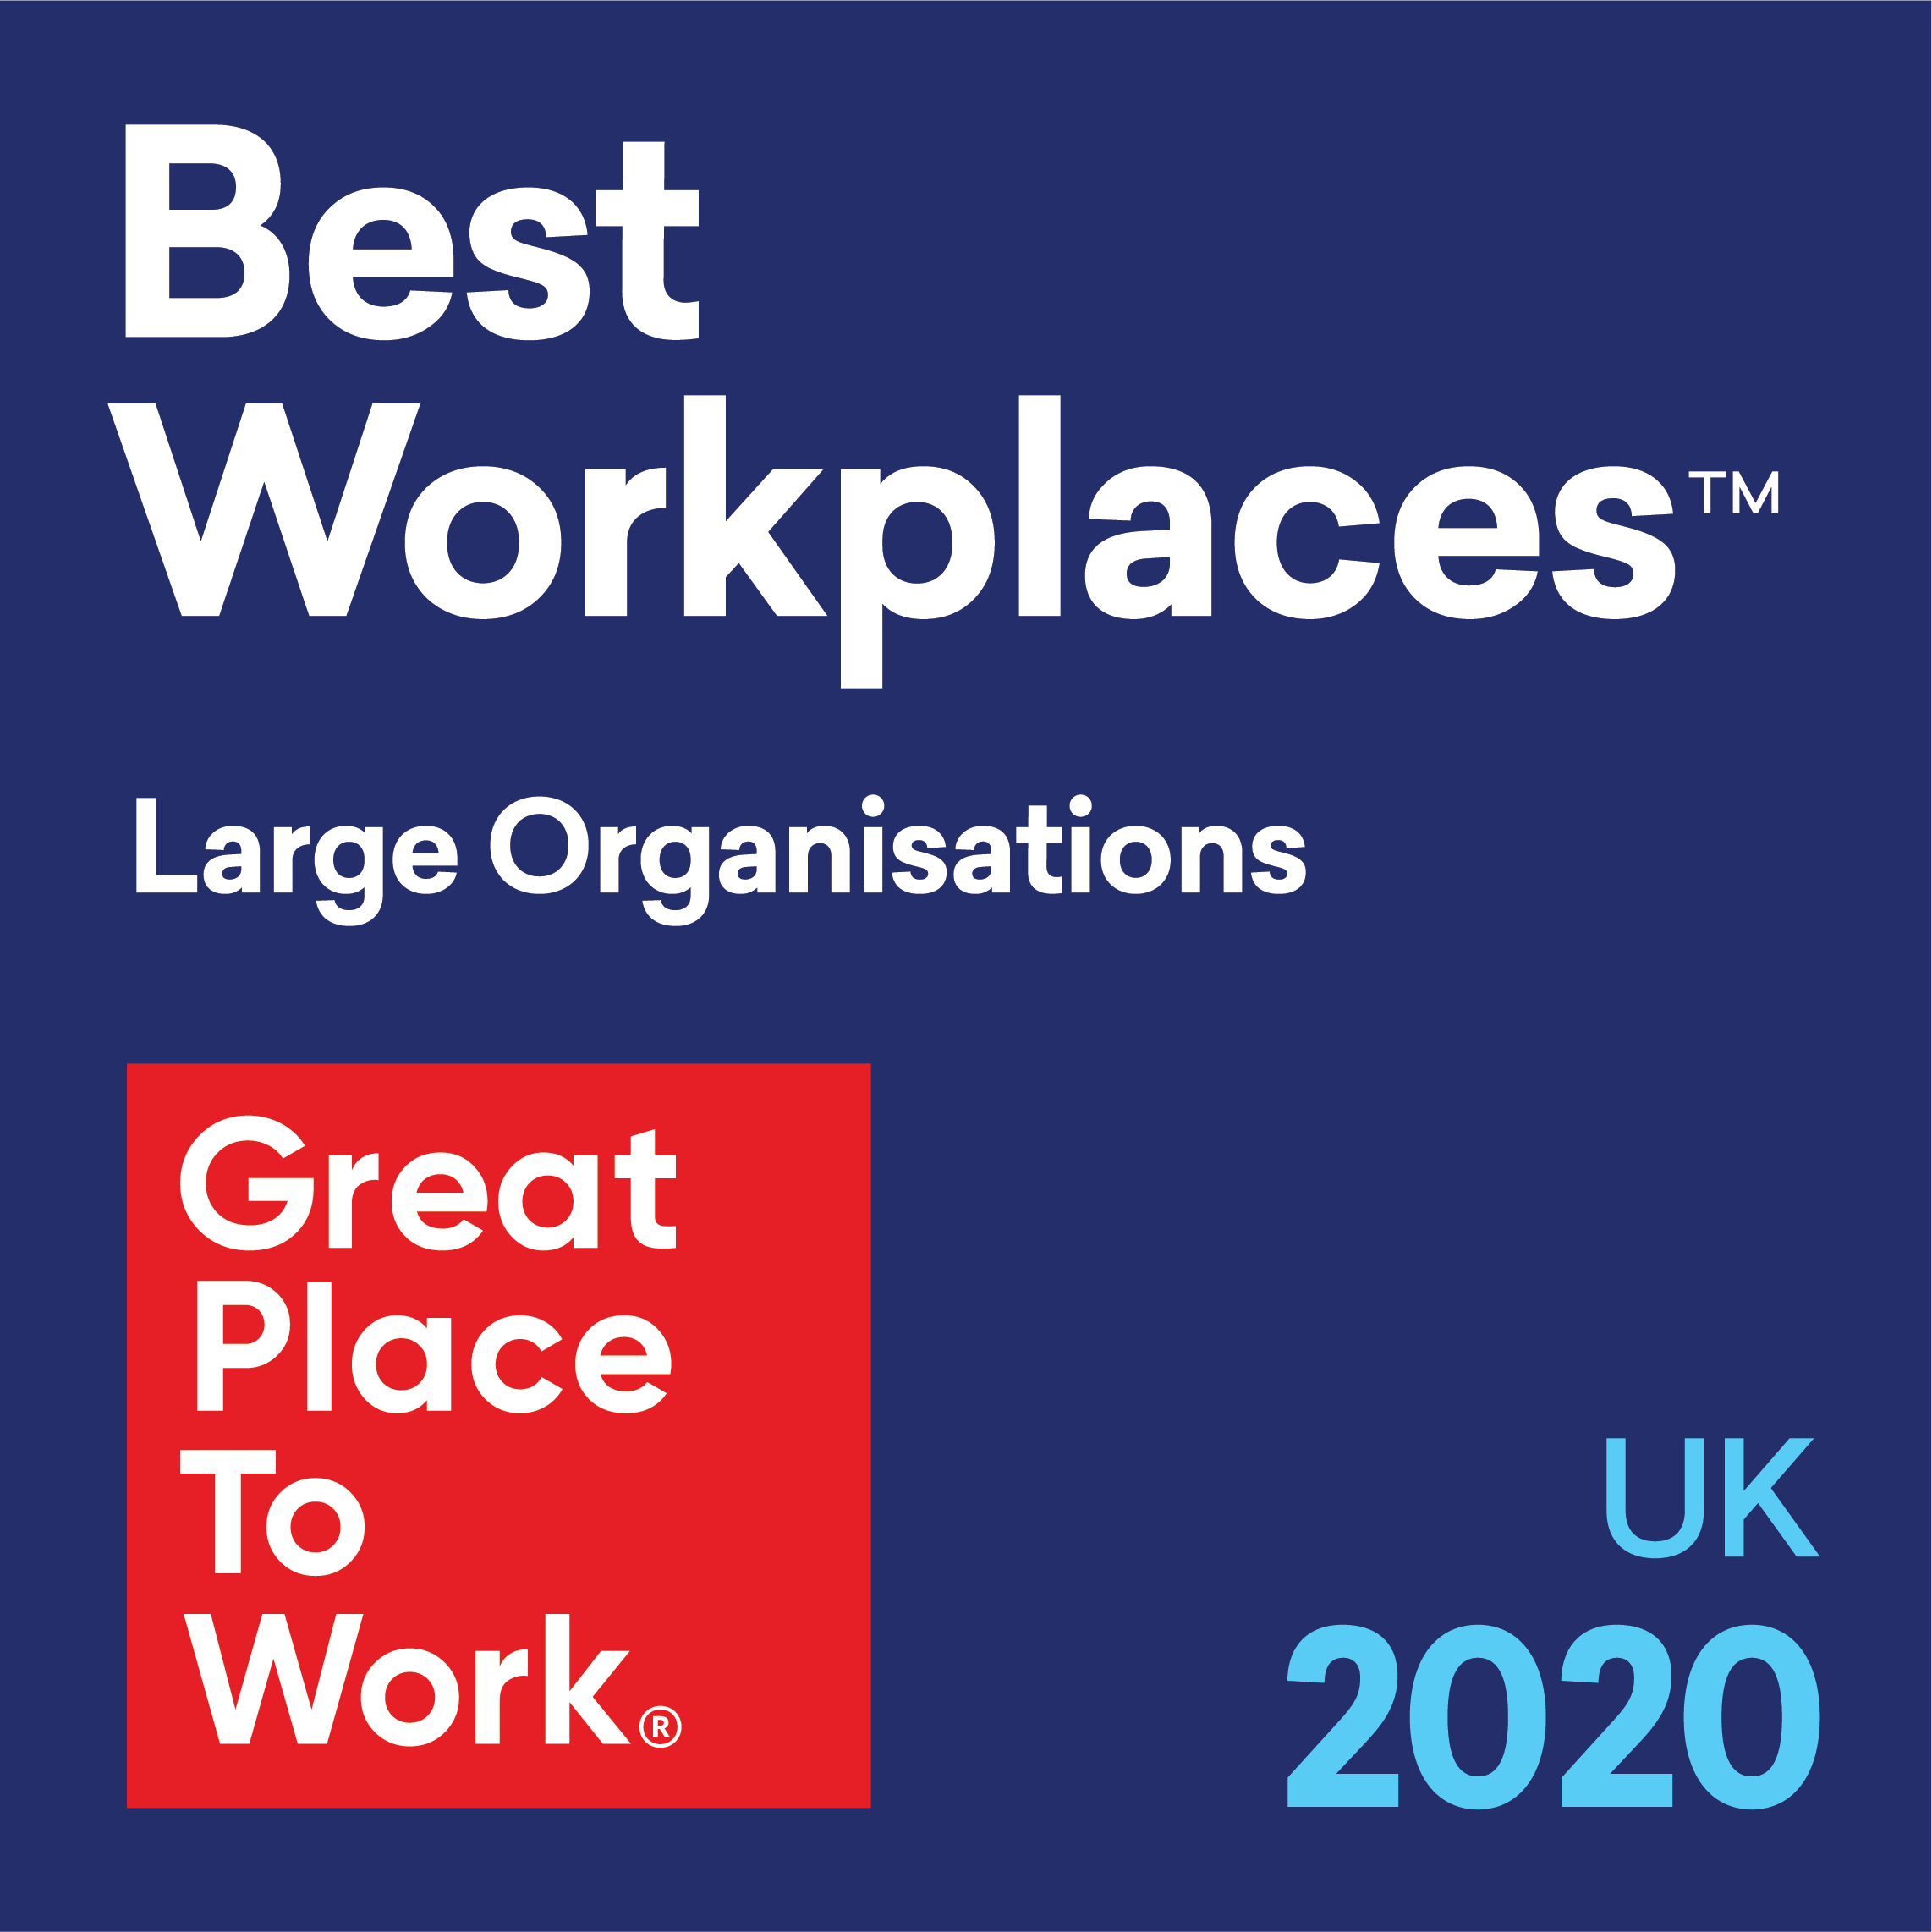 Great Place to Work - UK